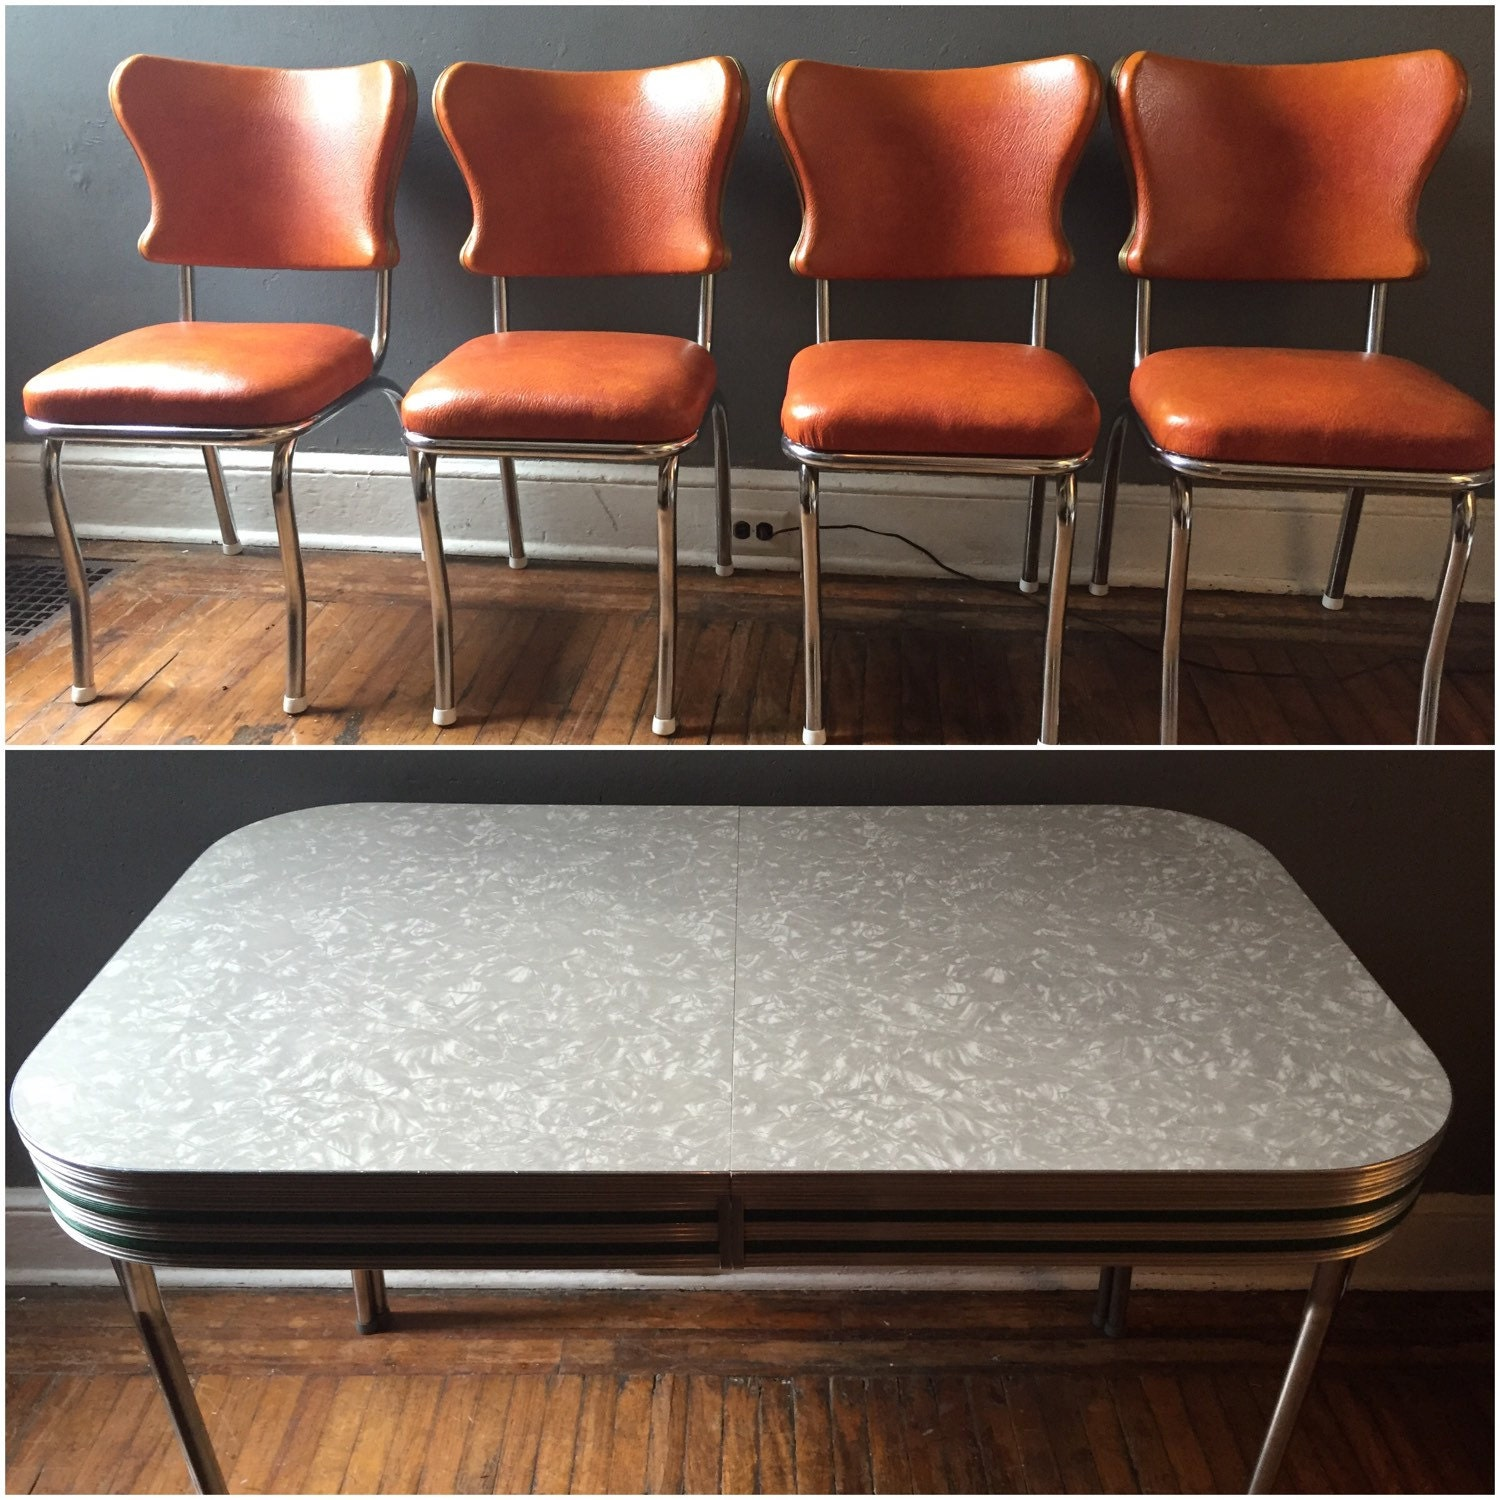 Atomic kitchen table and chairs vintage dinning set formica table top with set of orange seats - Formica top kitchen table ...